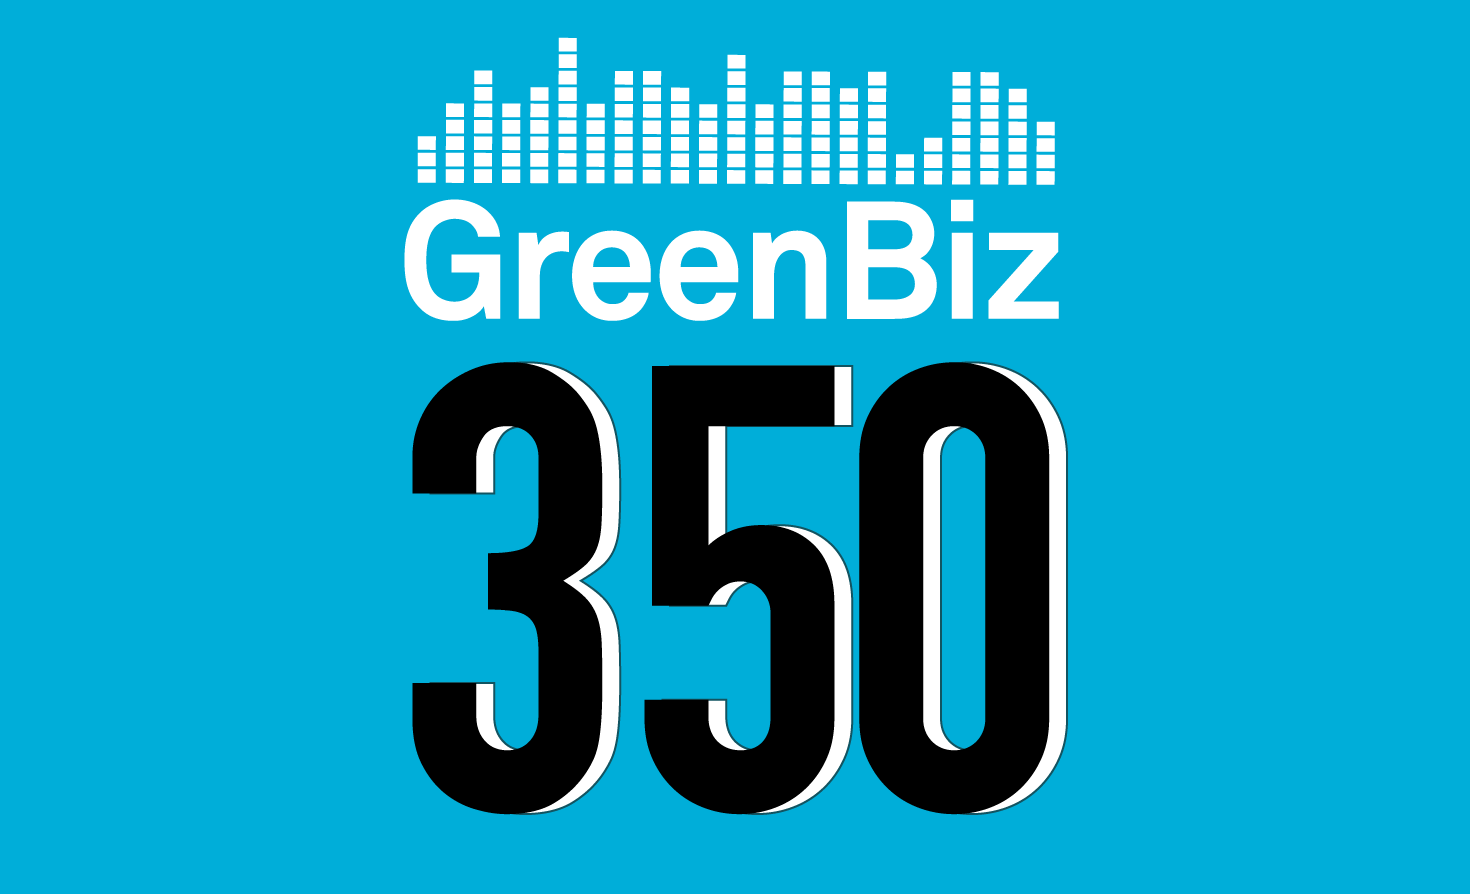 Episode 238: Facebook faces up to criticism, Climate Week conversation